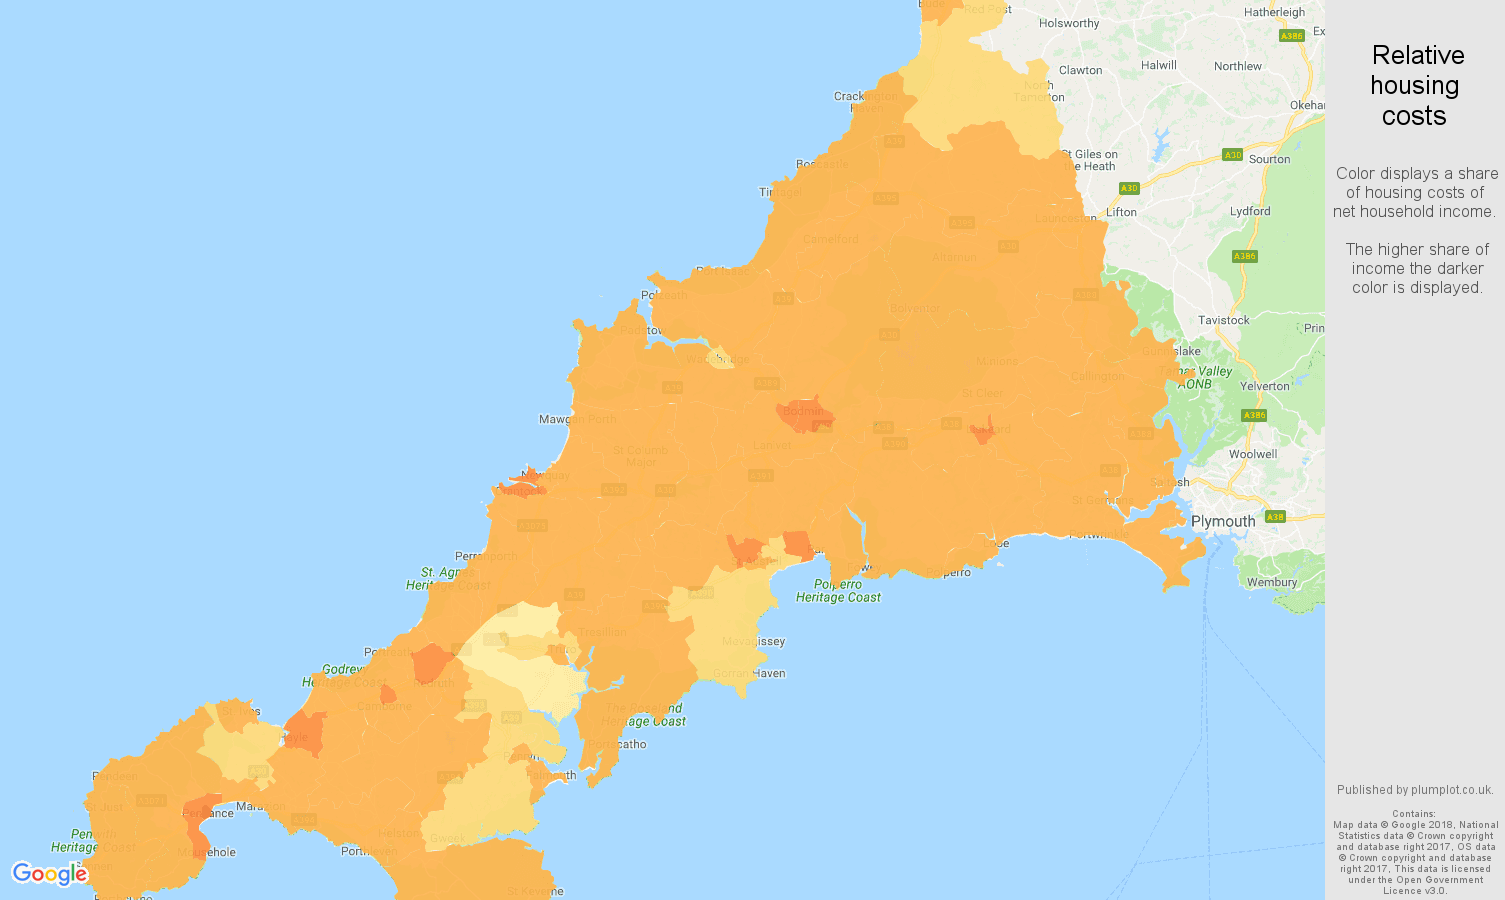 Cornwall relative housing costs map